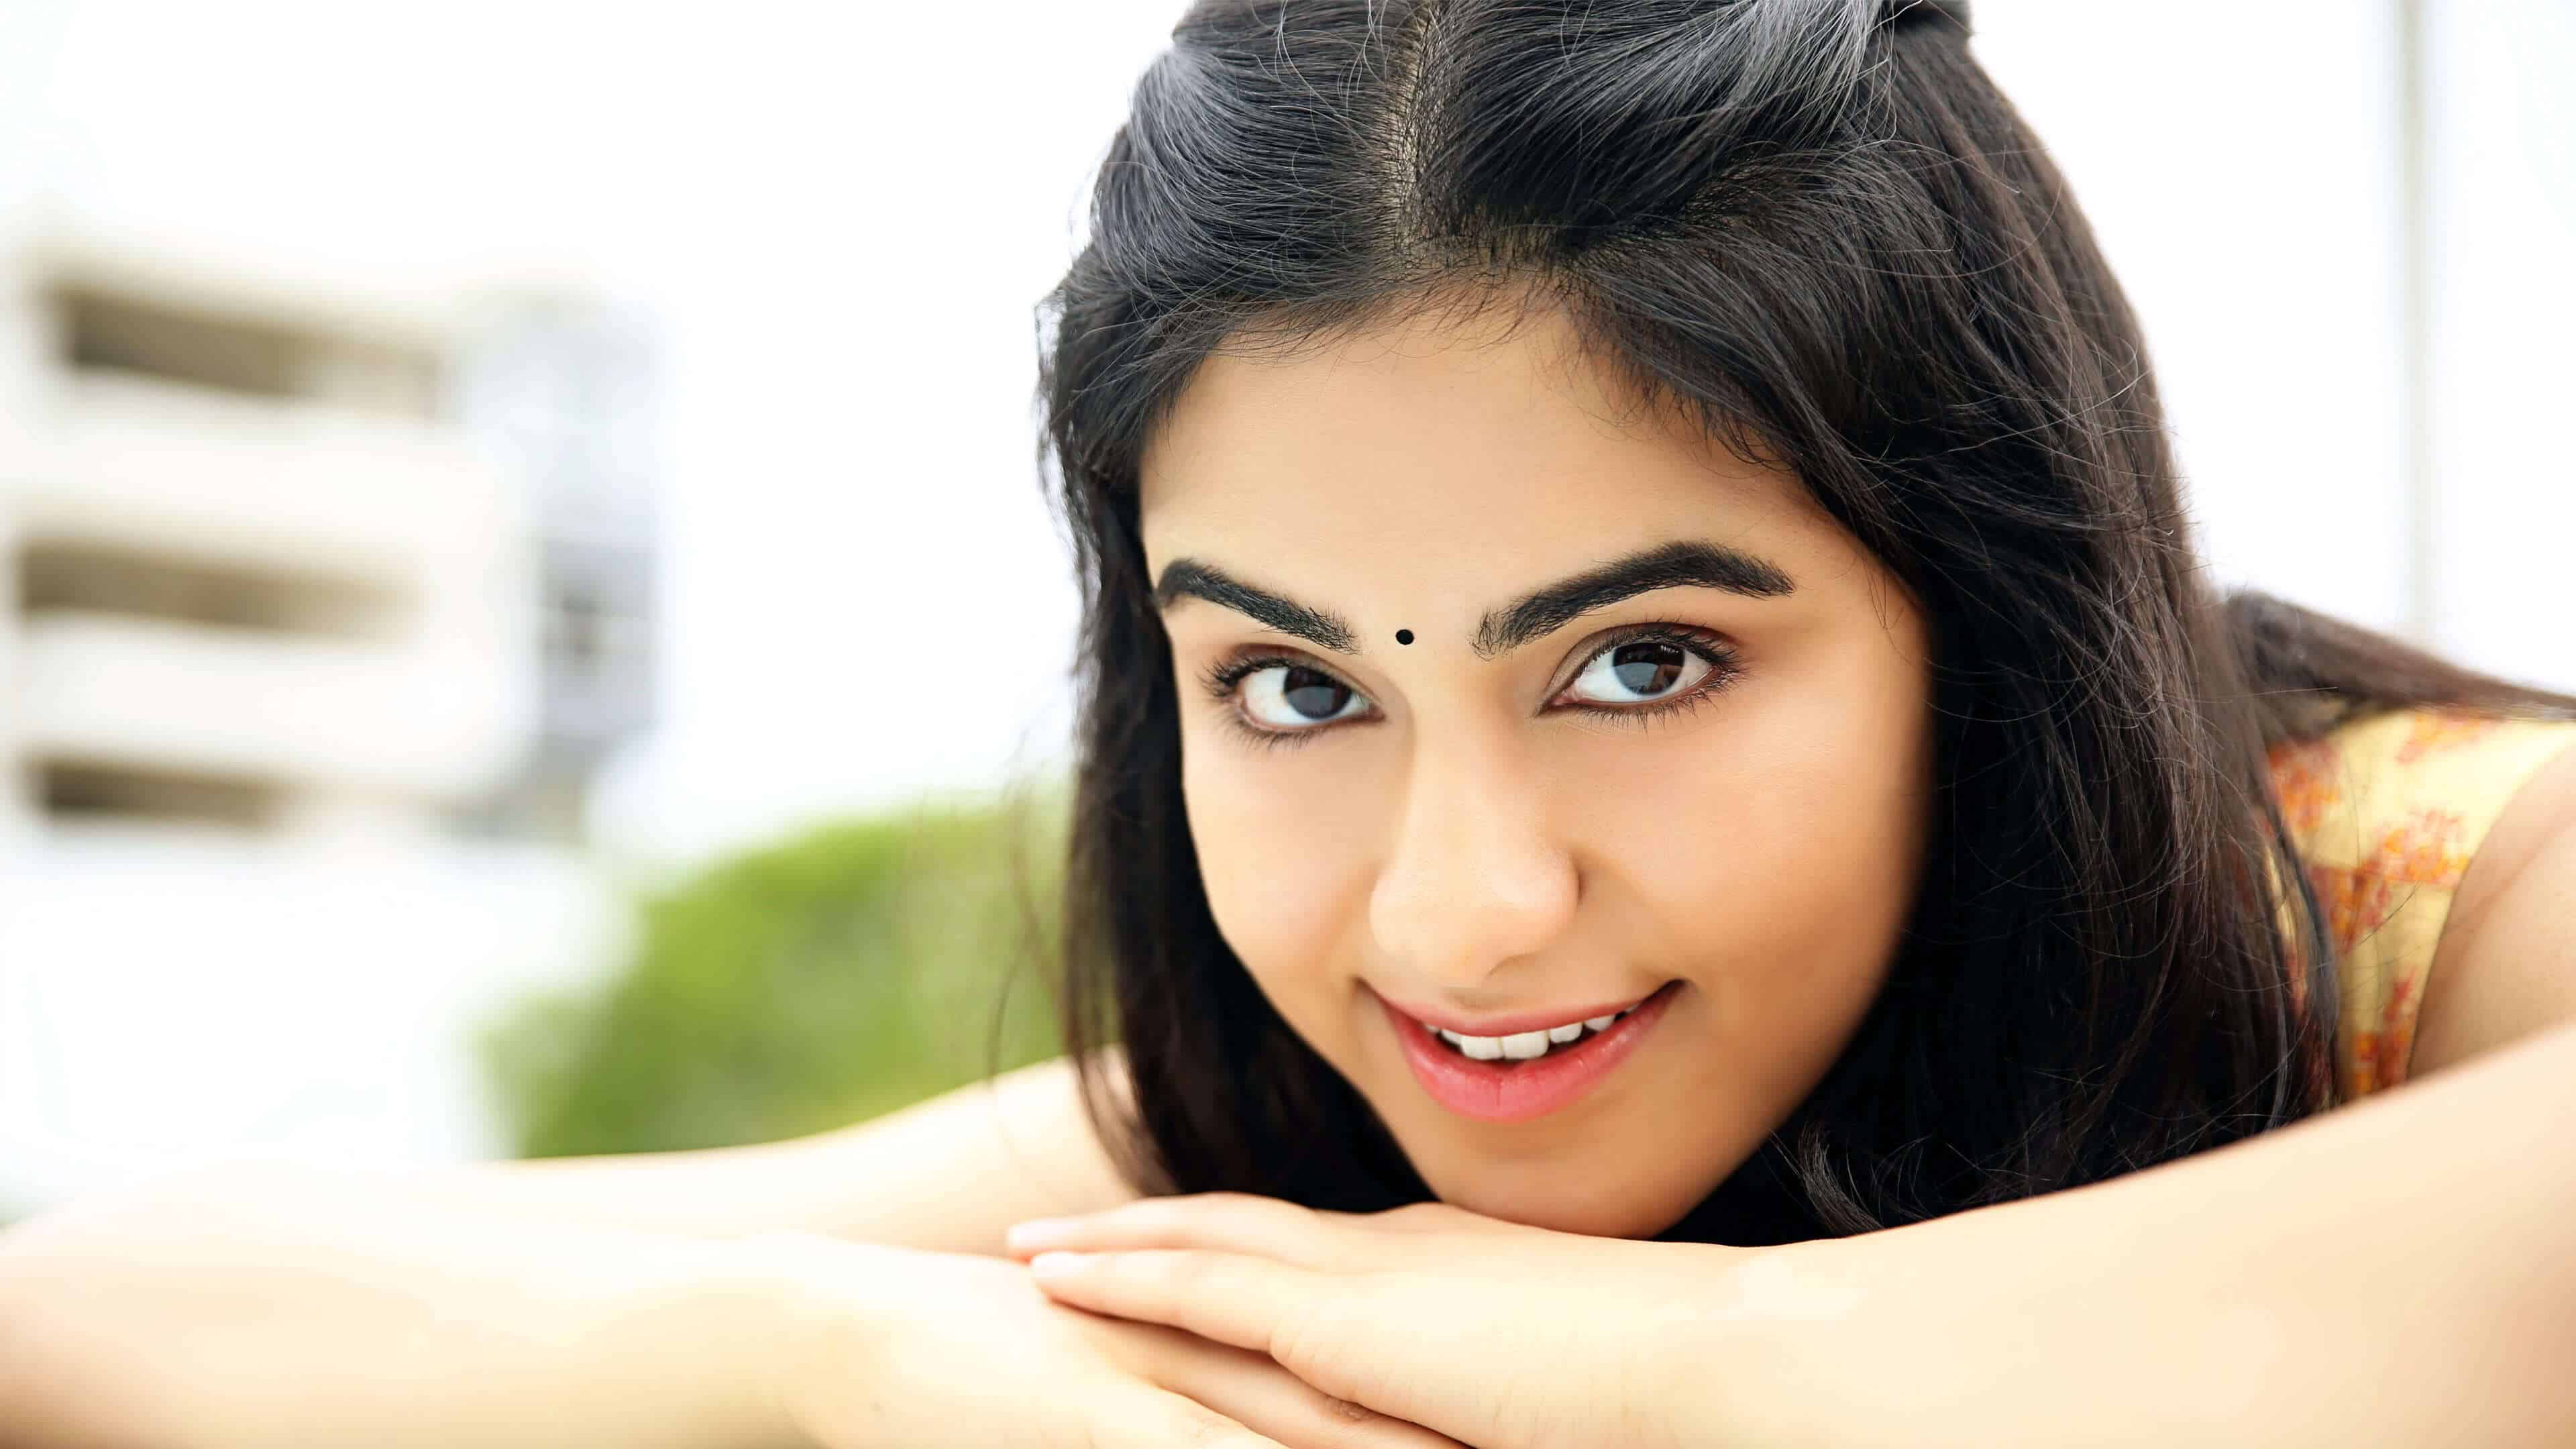 adah sharma uhd 4k wallpaper